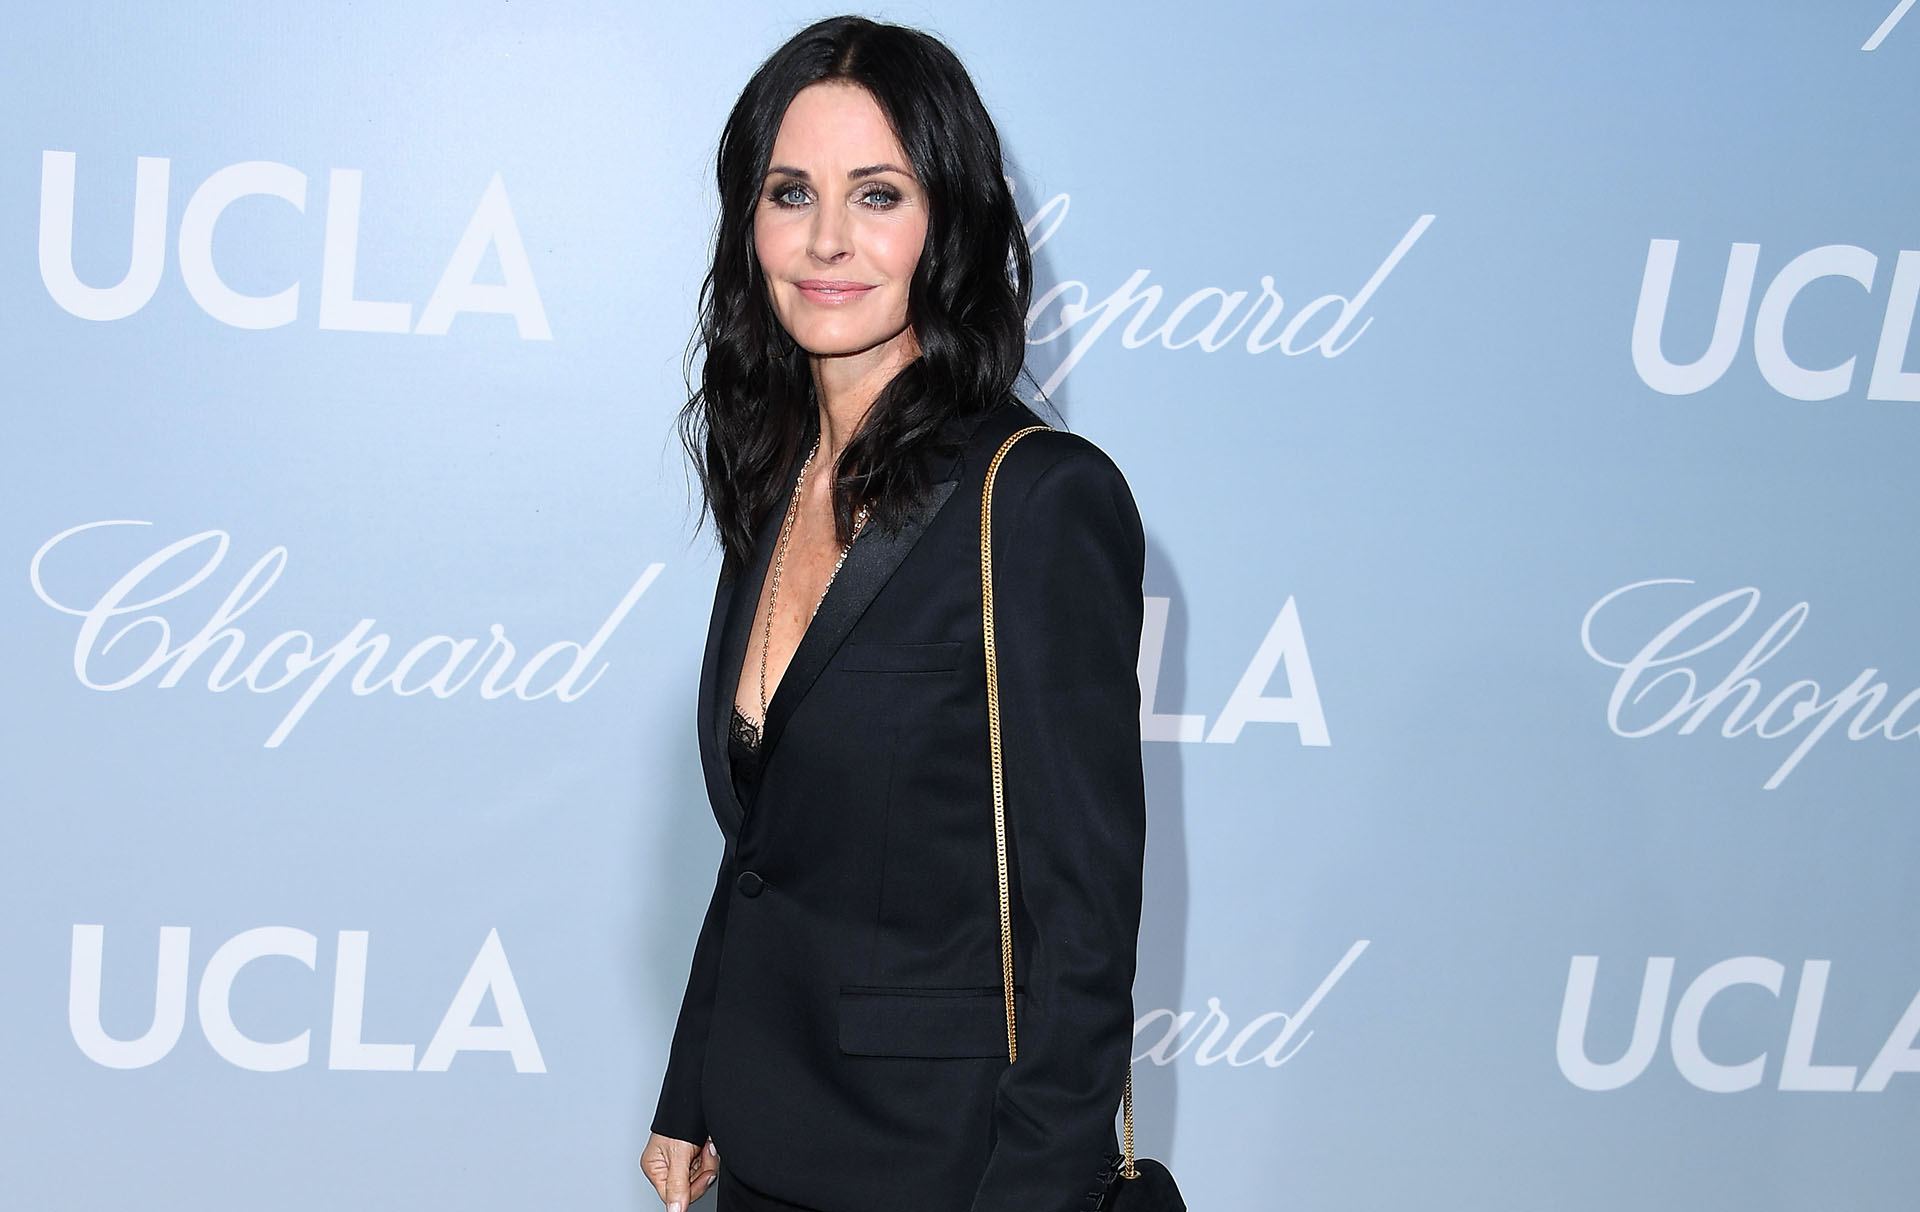 courteney cox multiple miscarriages